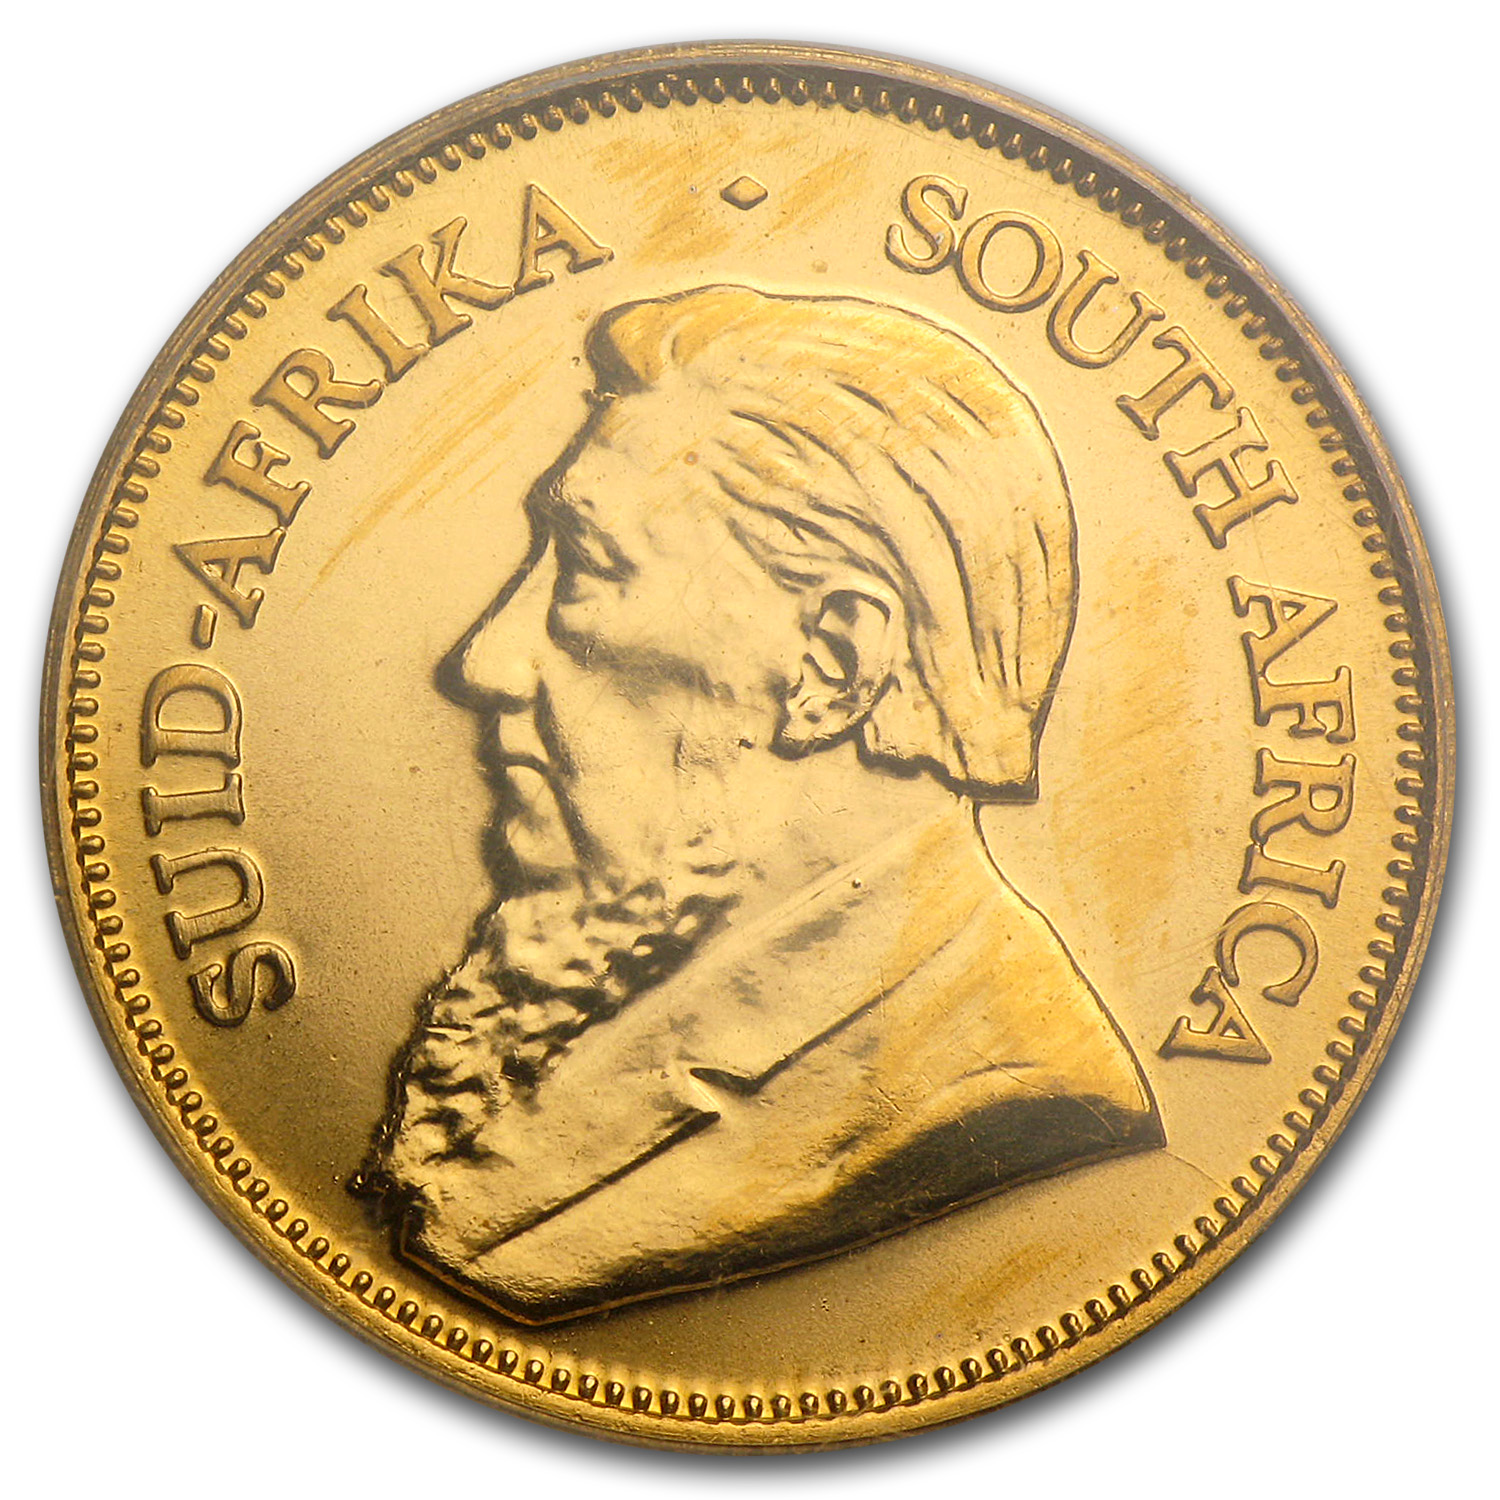 2000 South Africa 1/4 oz Gold Krugerrand Unc PCGS (WTC)